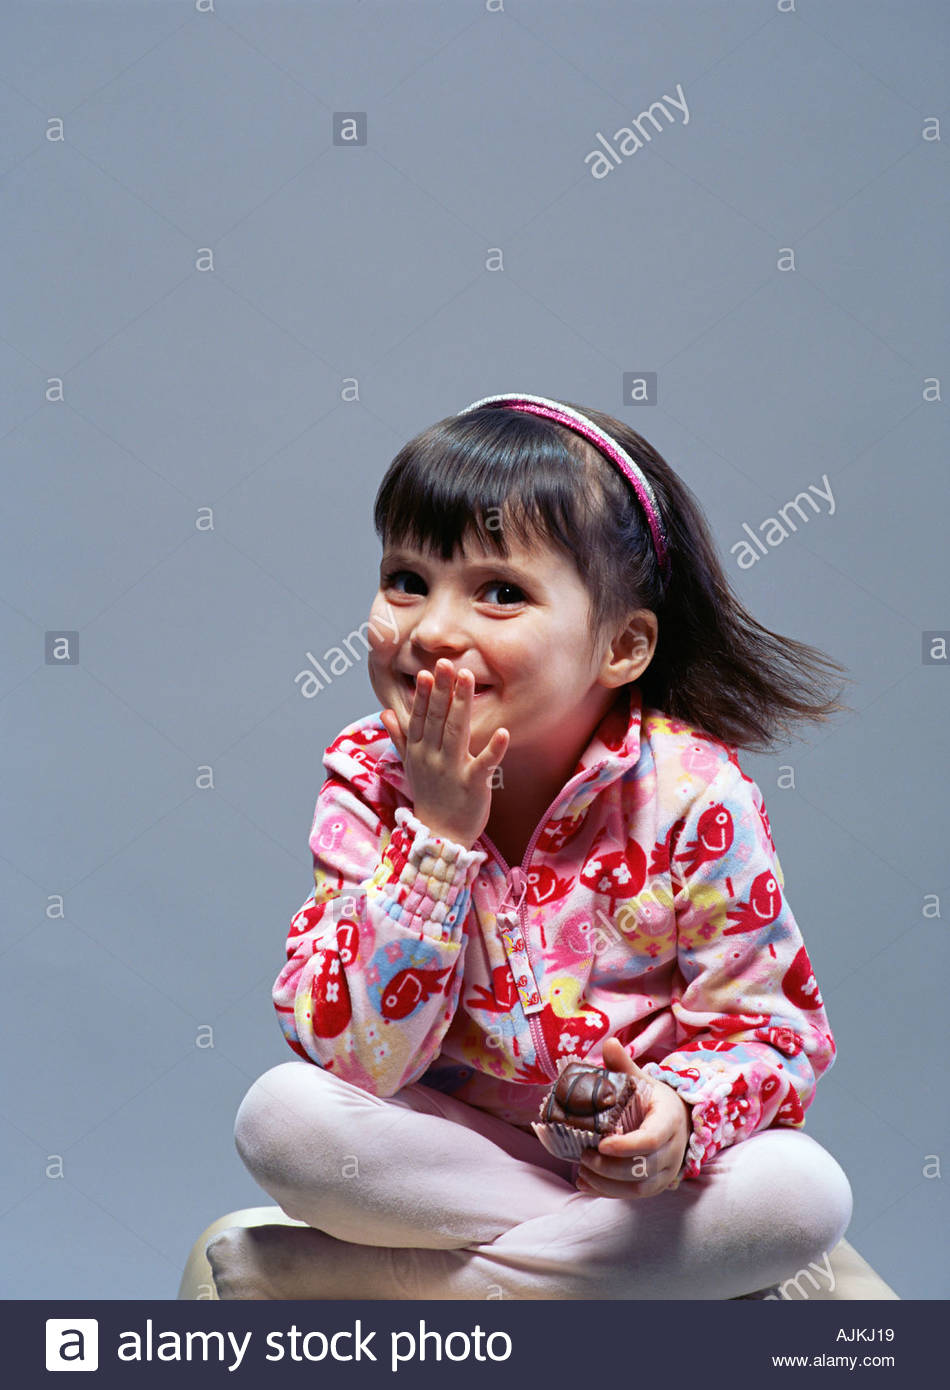 Mischievous girl holding a cup cake - Stock Image